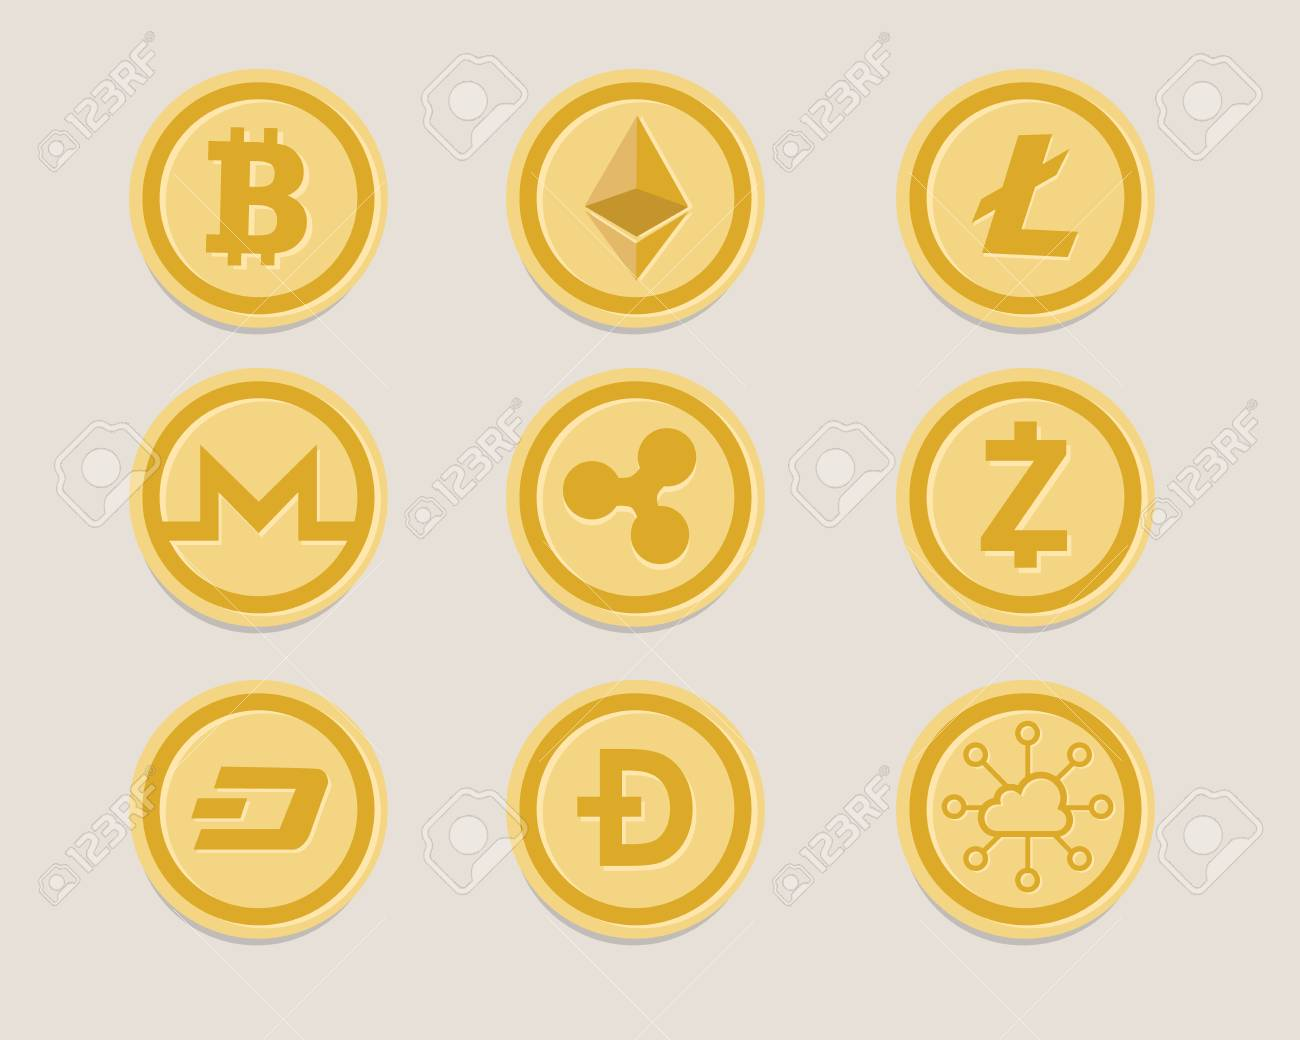 A crypto currency coin set vector illustration. - 87701663